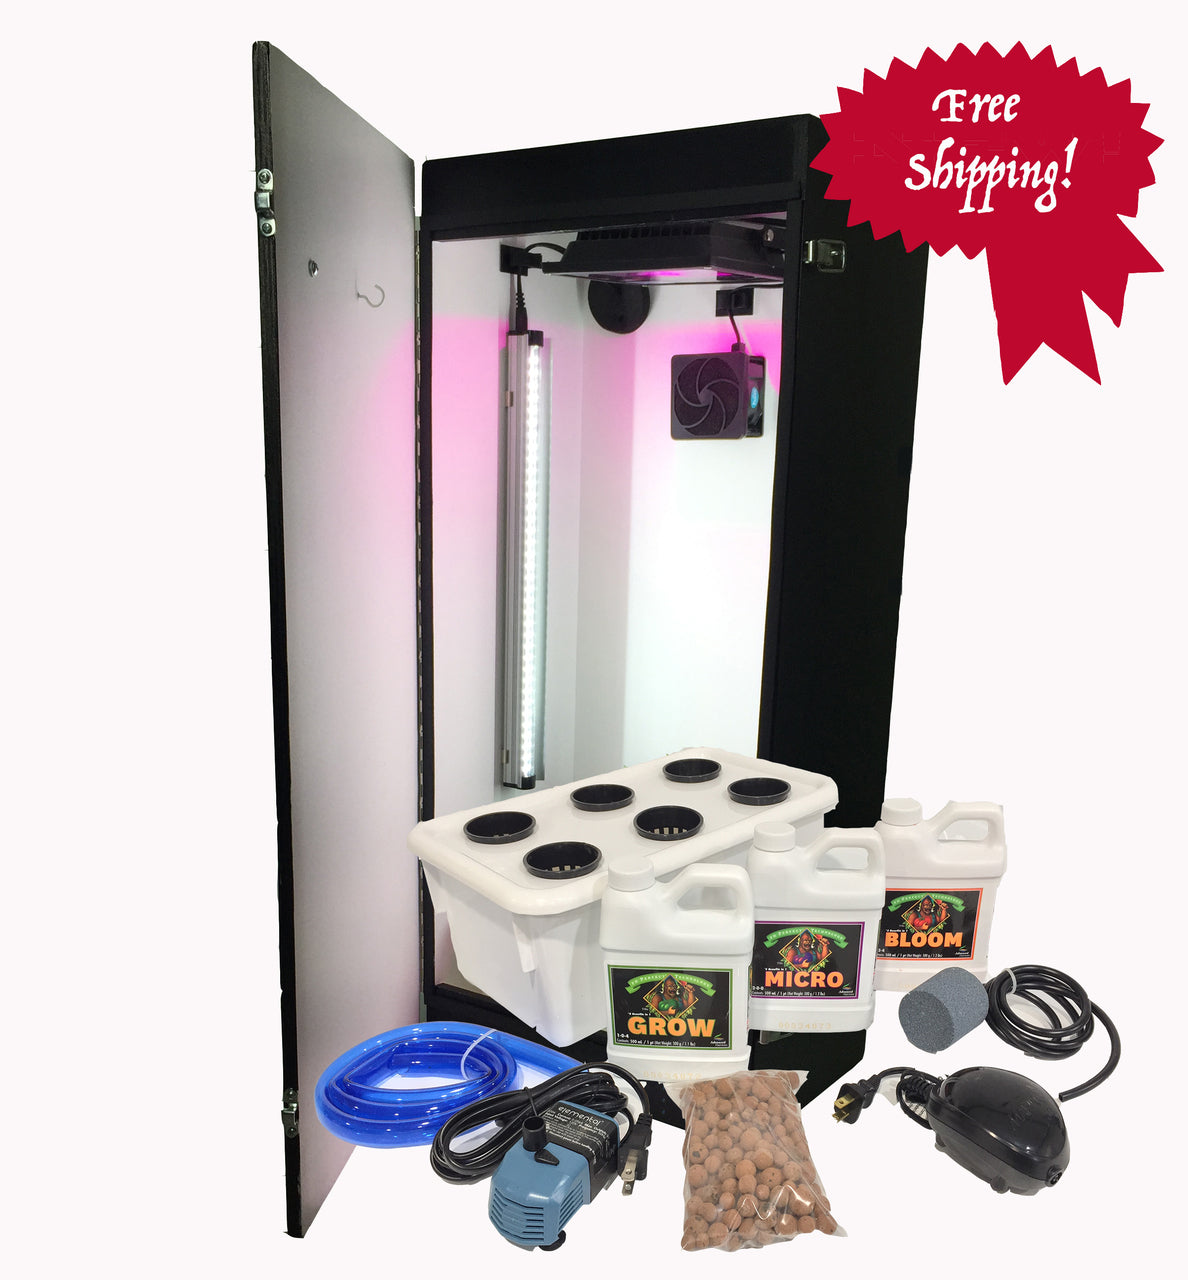 Cash Crop 6.0 - LED Hydroponics Grow Box